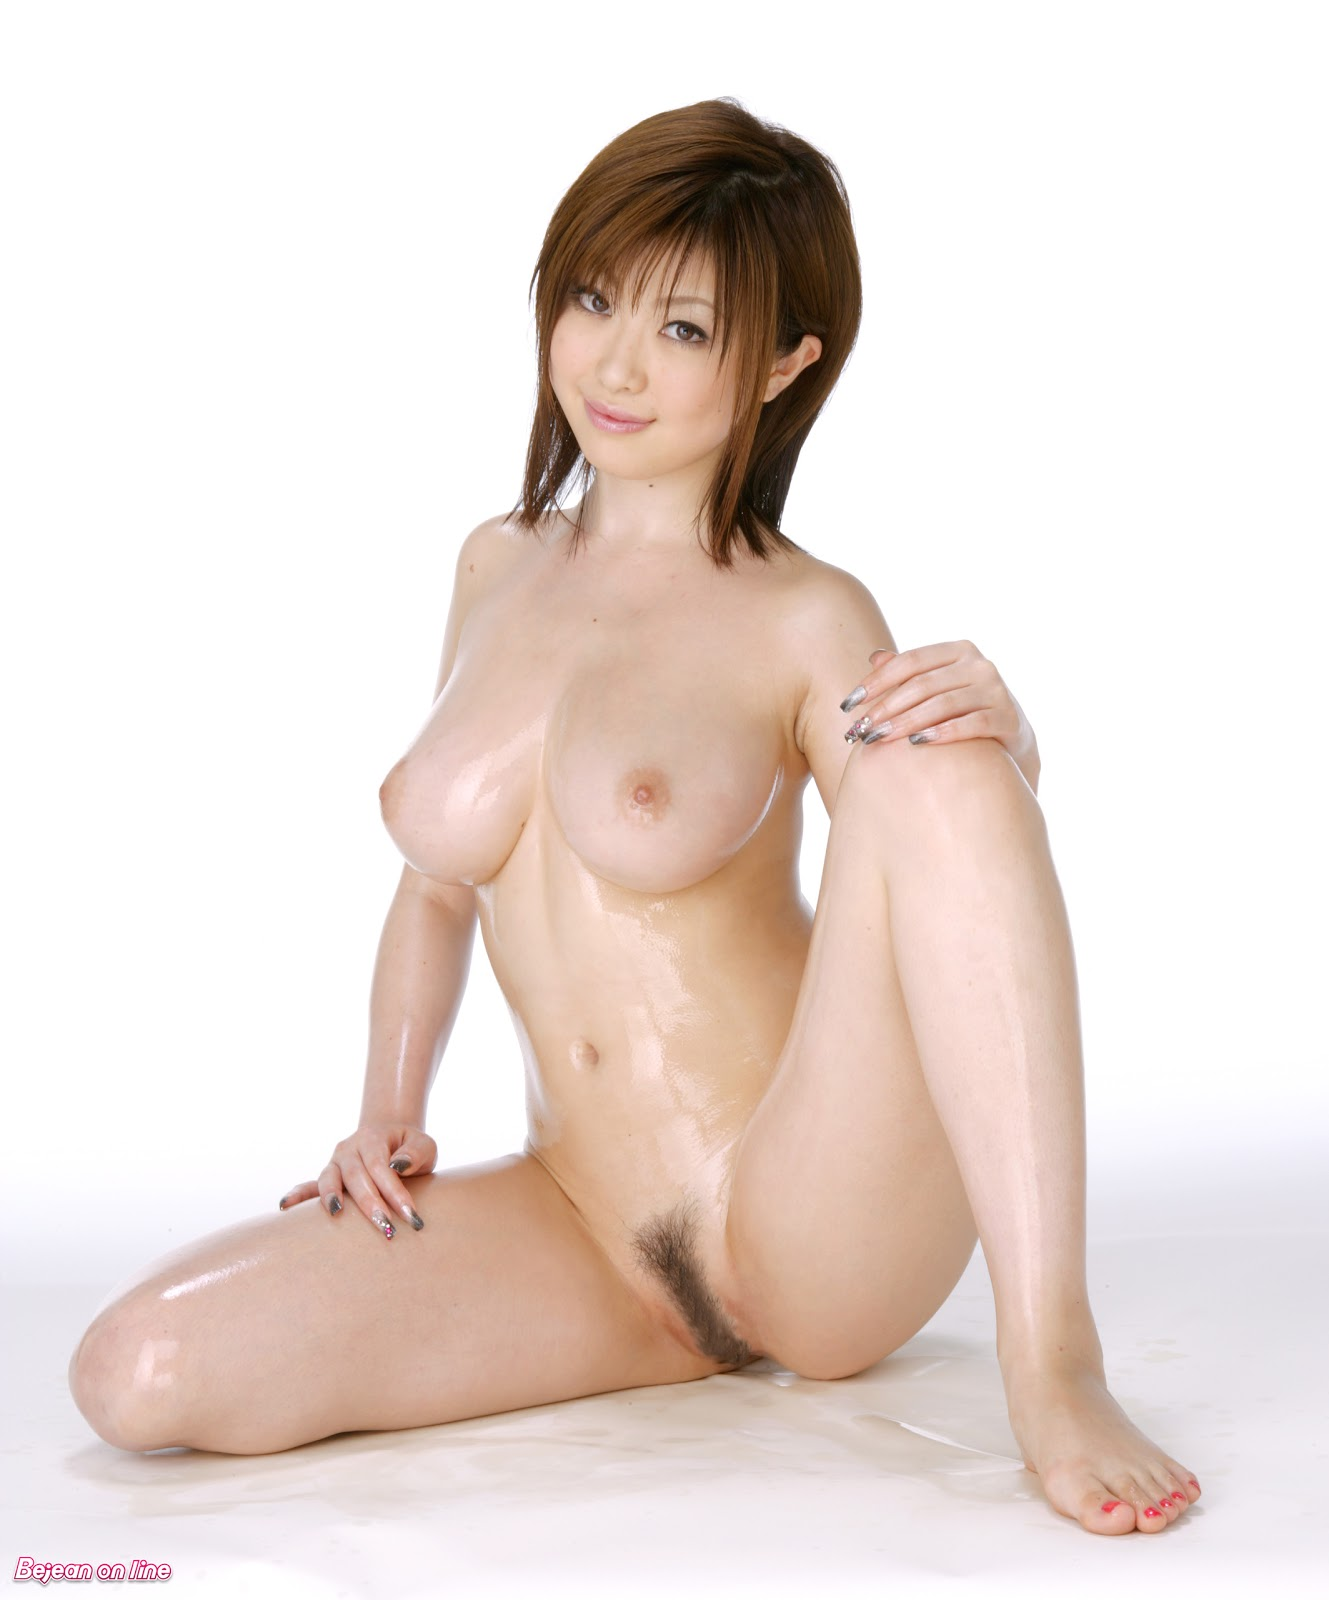 japanese Asian uncensored nude girl